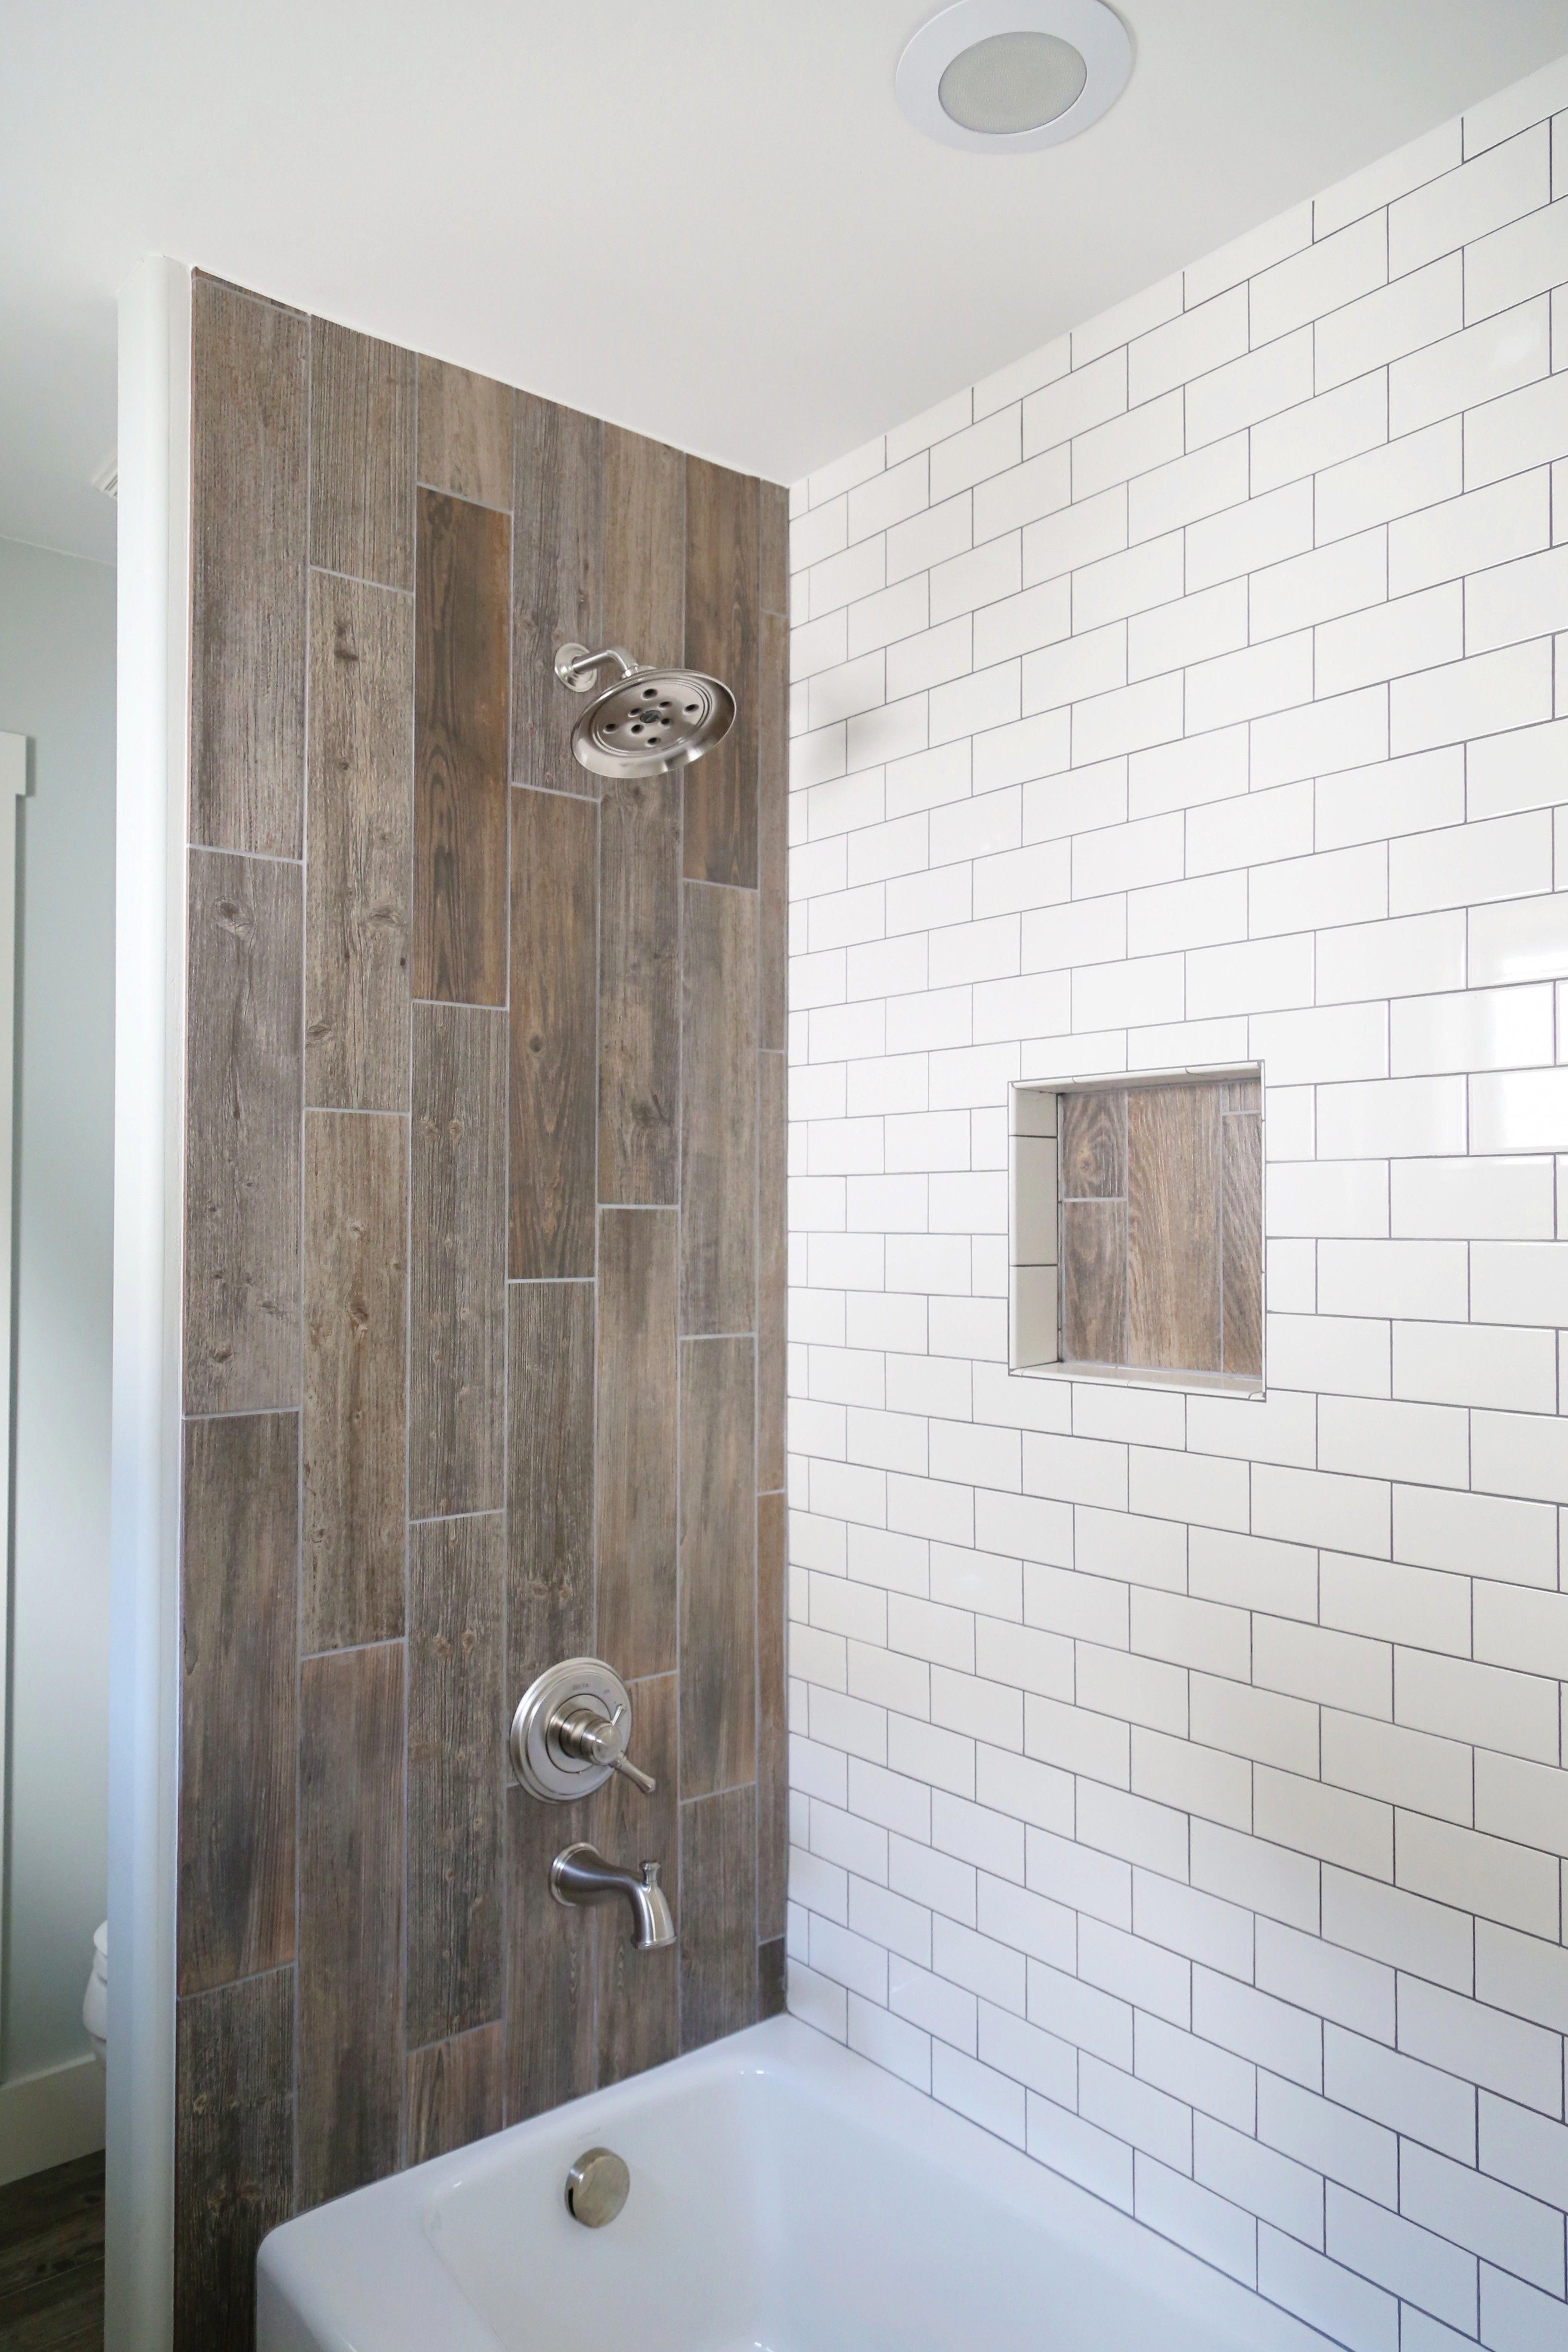 Jack And Jill Bathroom Renovation Using Yellow Duk For Easy Shower Wall Insert Wood Grain Meets Tiling Clean Wood Tile Shower Farmhouse Shower Shower Tile